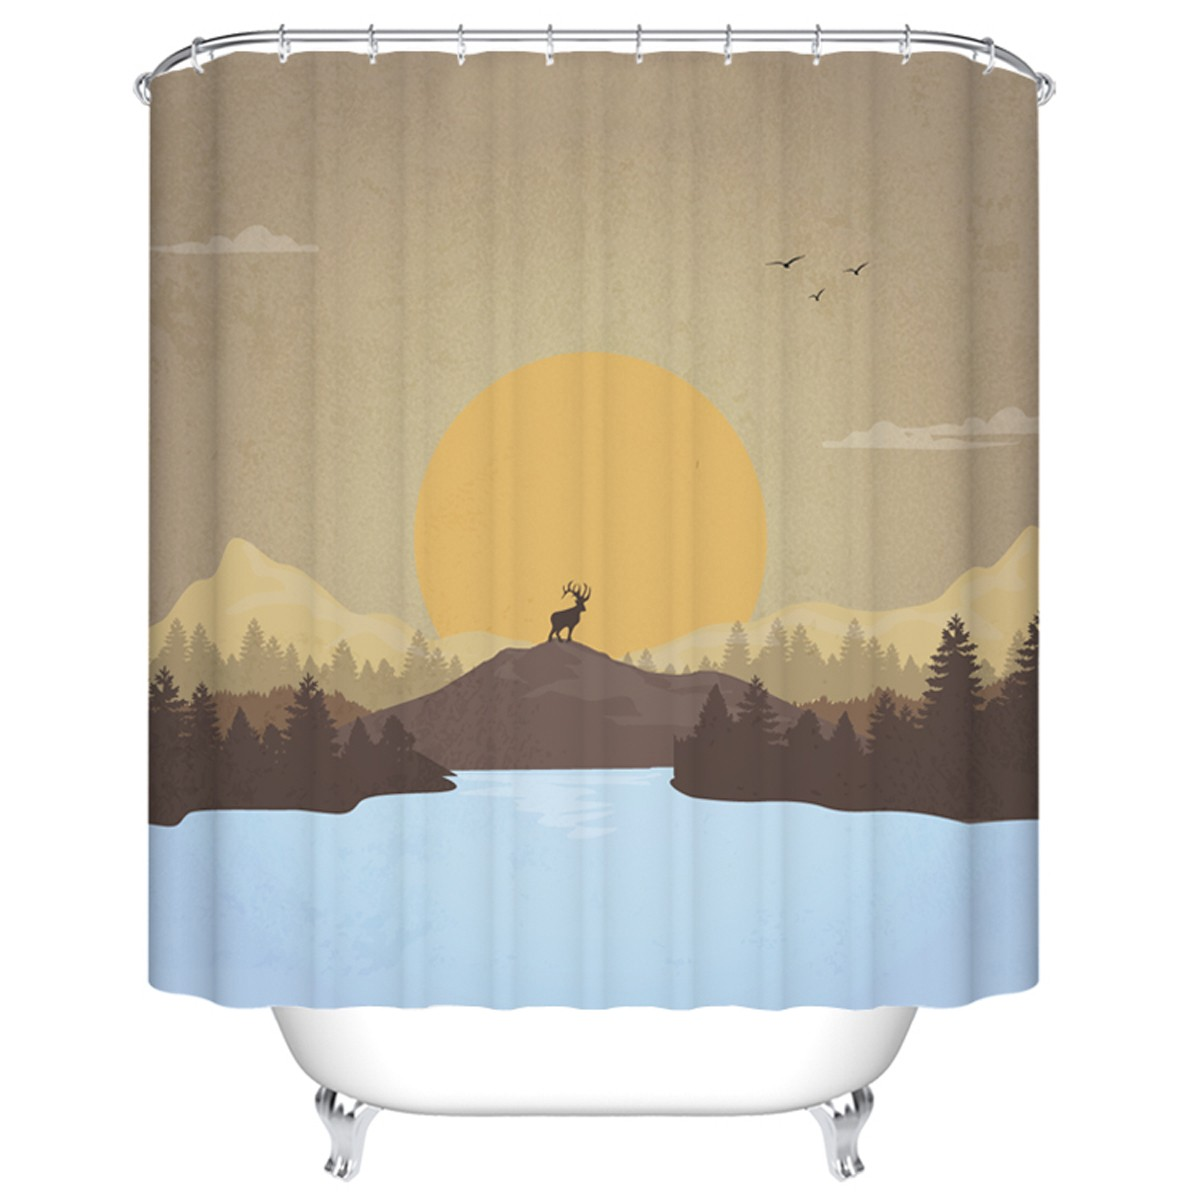 "Bathroom Waterproof Shower Curtain, 70"" W x 72"" H (DK-YT024)"